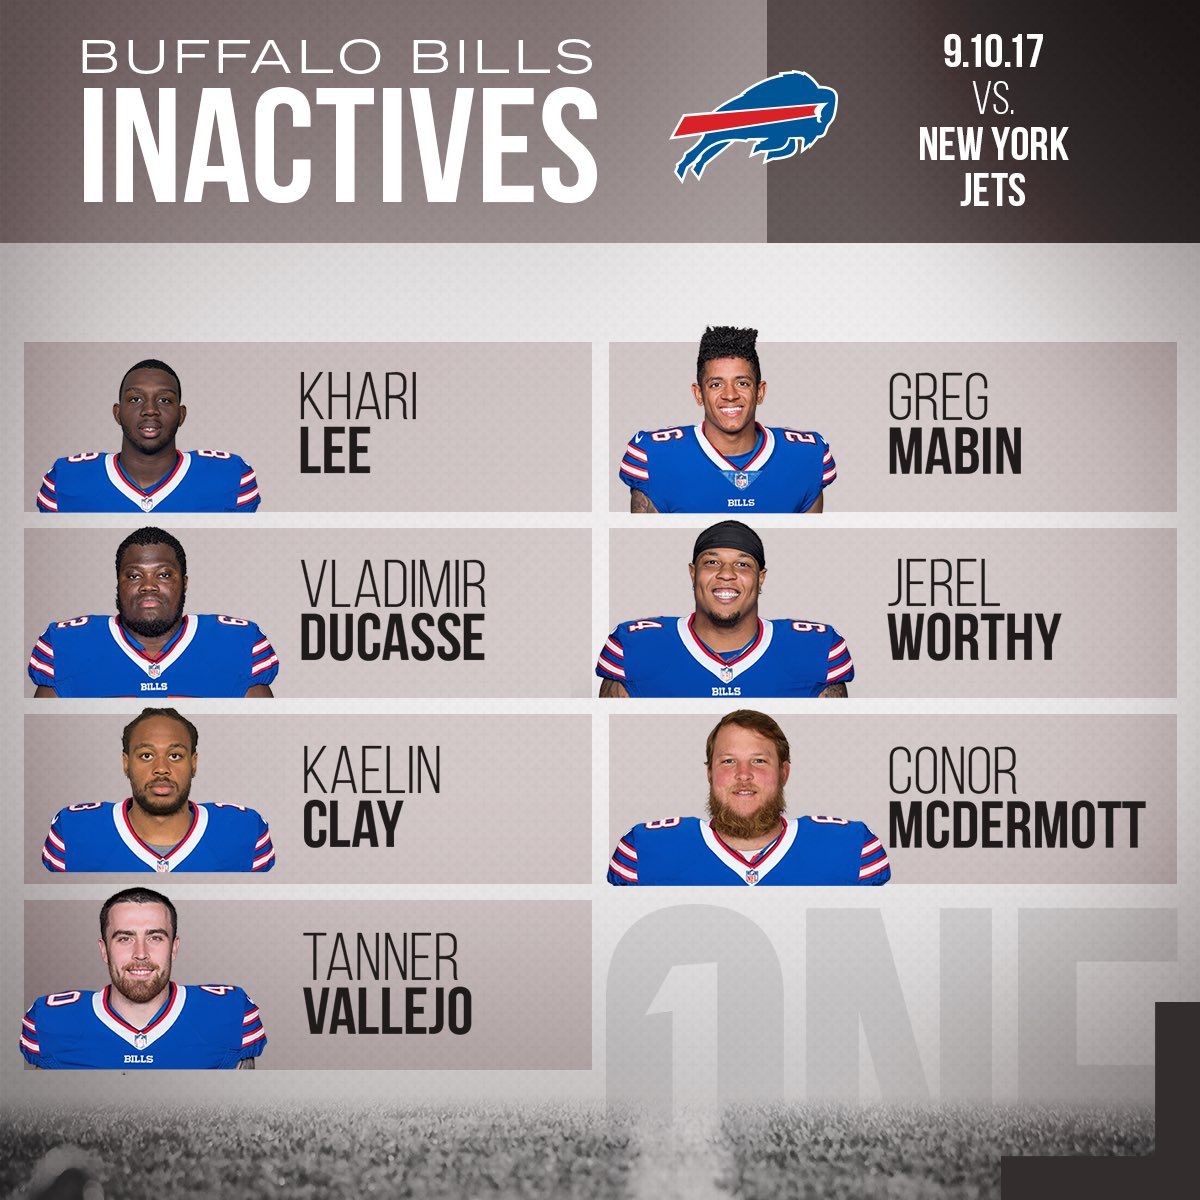 Today's Bills inactives. #NYJvsBUF  Details: https://t.co/6wazMKa2k1 https://t.co/QGsy0gRn1V